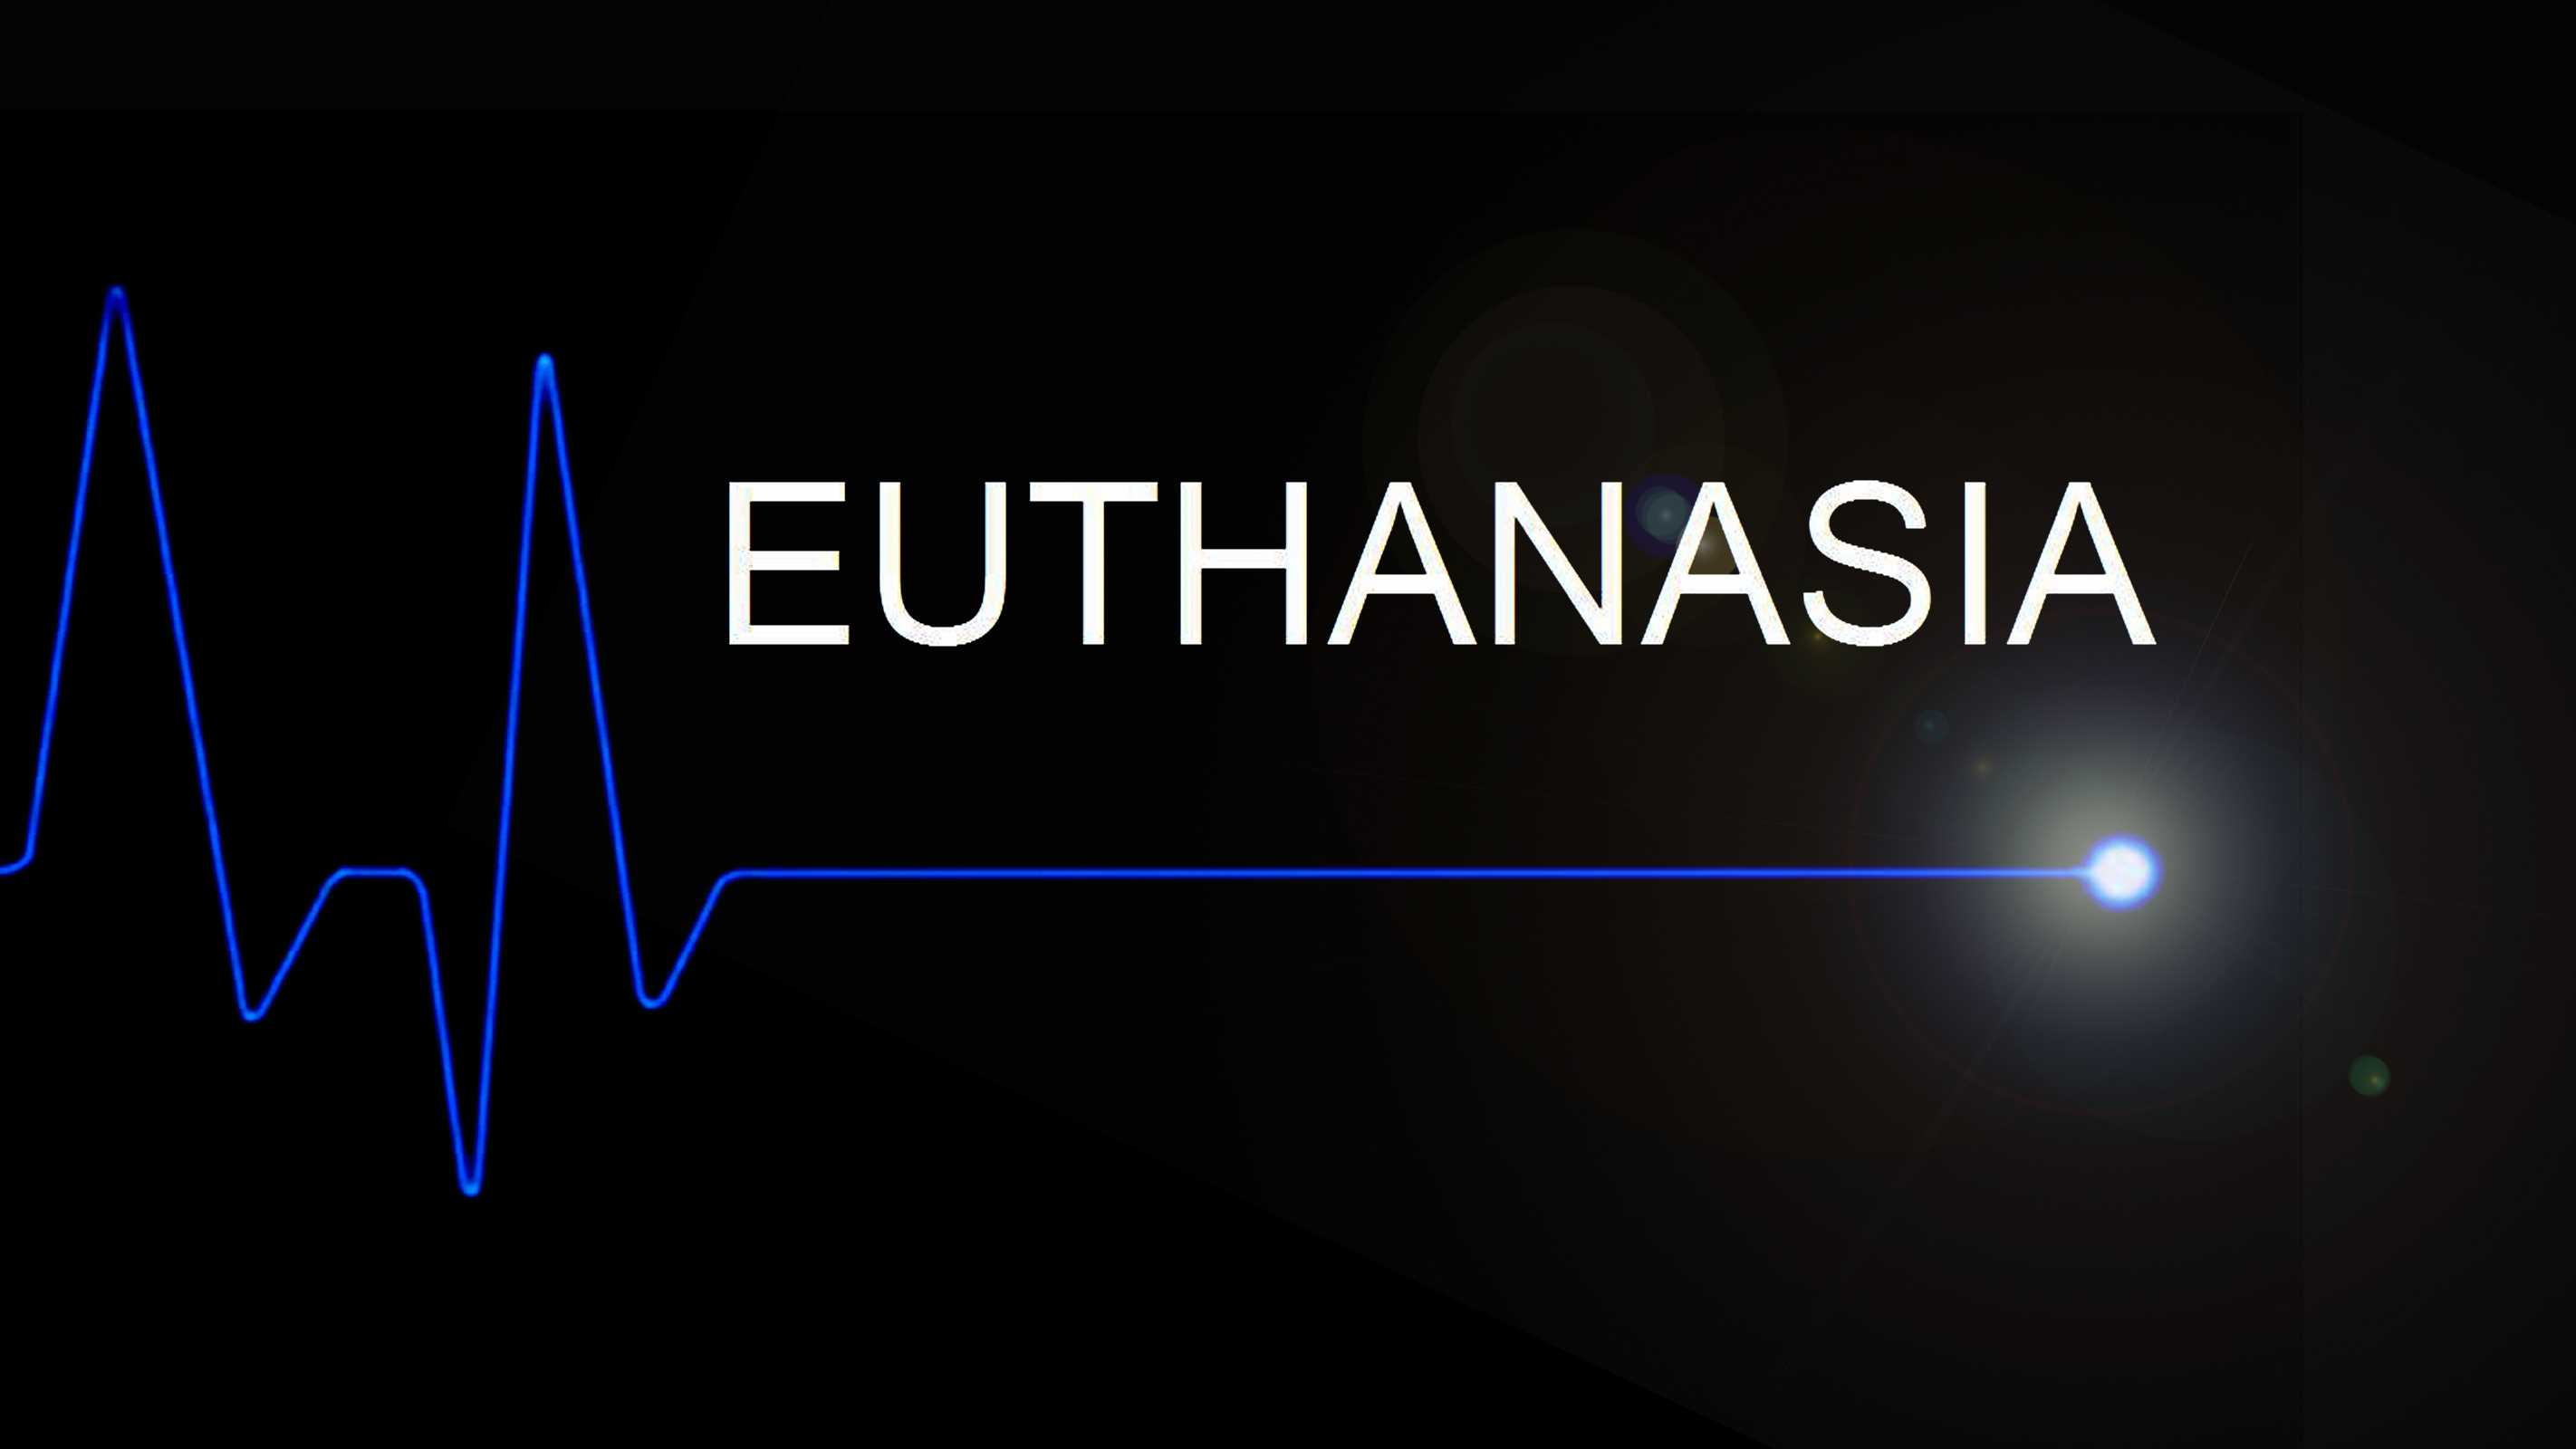 https://netivist.org/debate/mercy-killing-debate-should-euthanasia-be-legalized